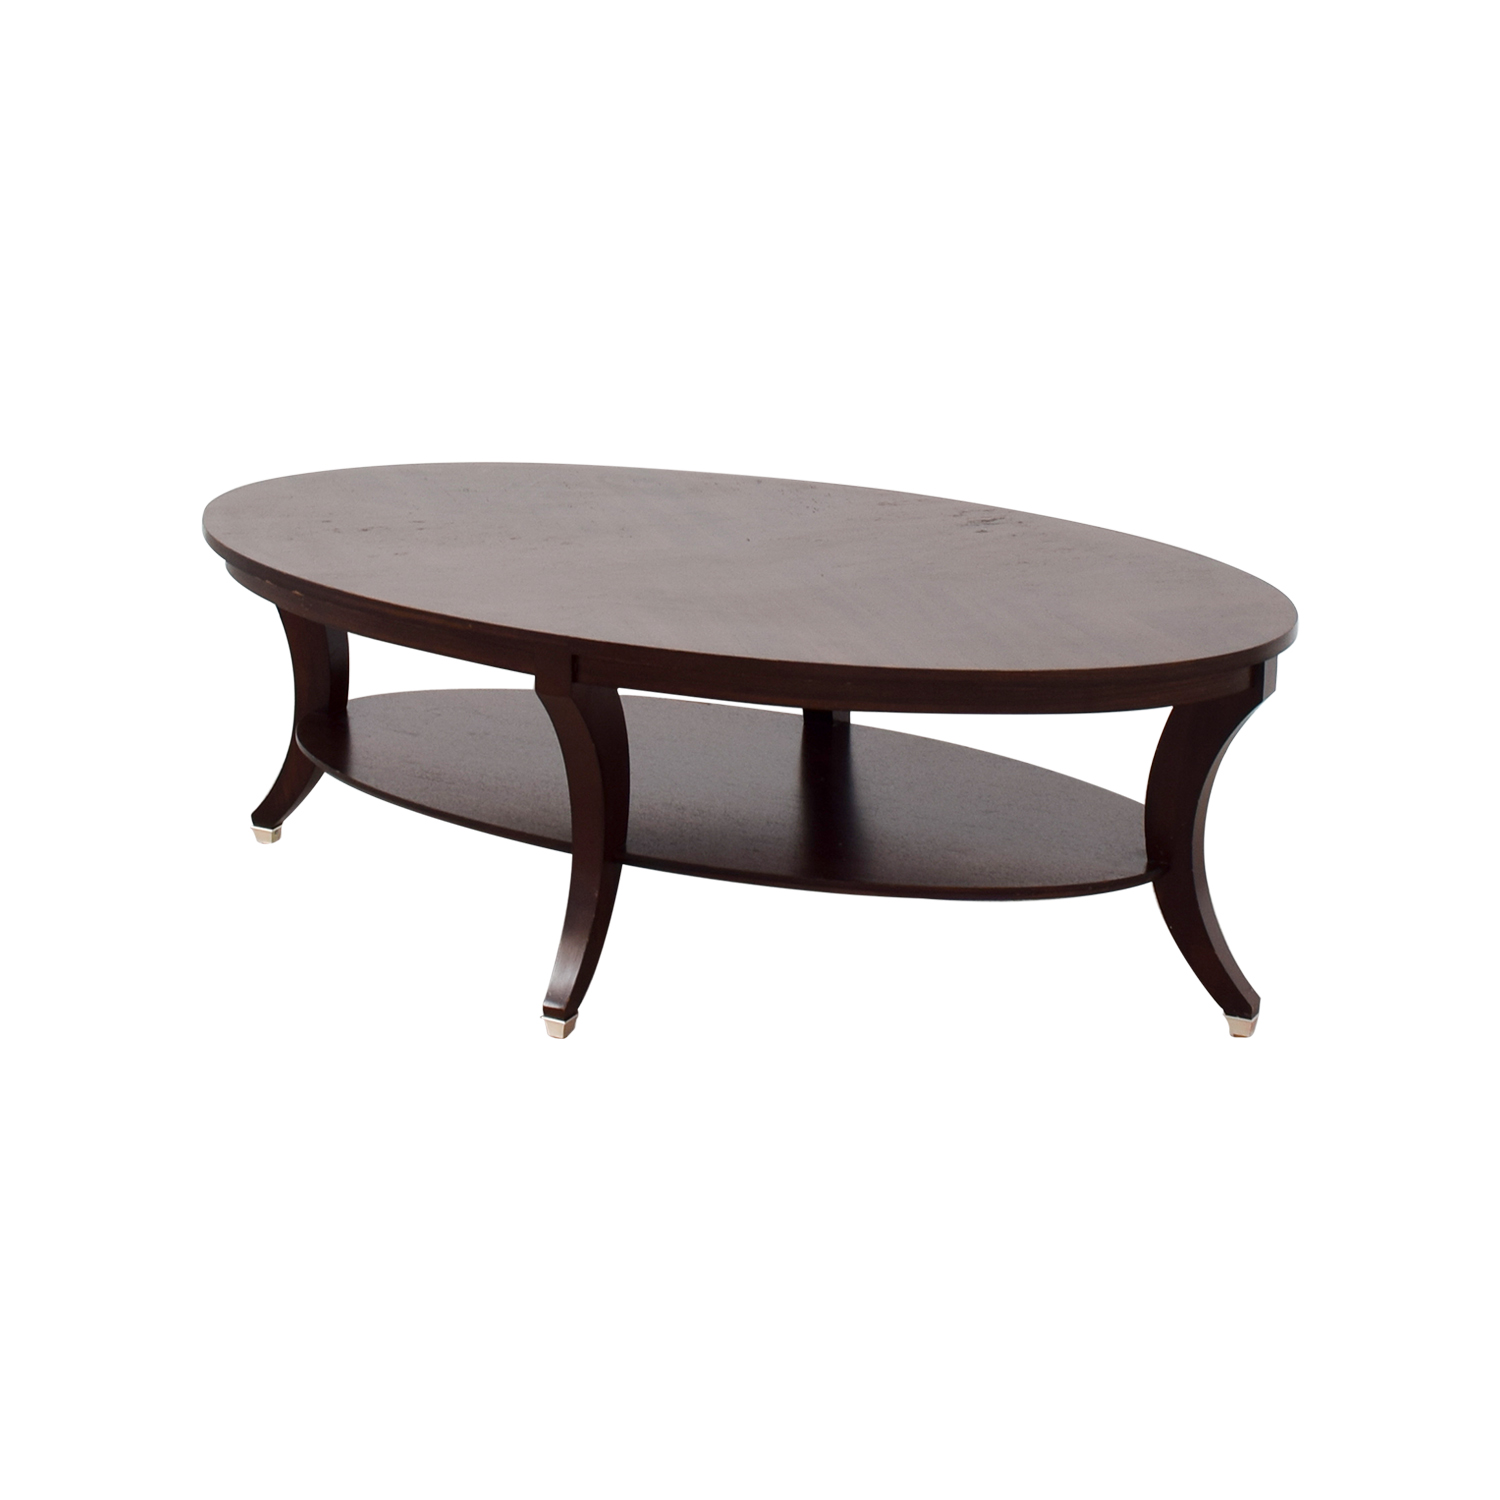 Ethan Allen Tuscan Coffee Table: Ethan Allen Ethan Allen Adler Oval Coffee Table